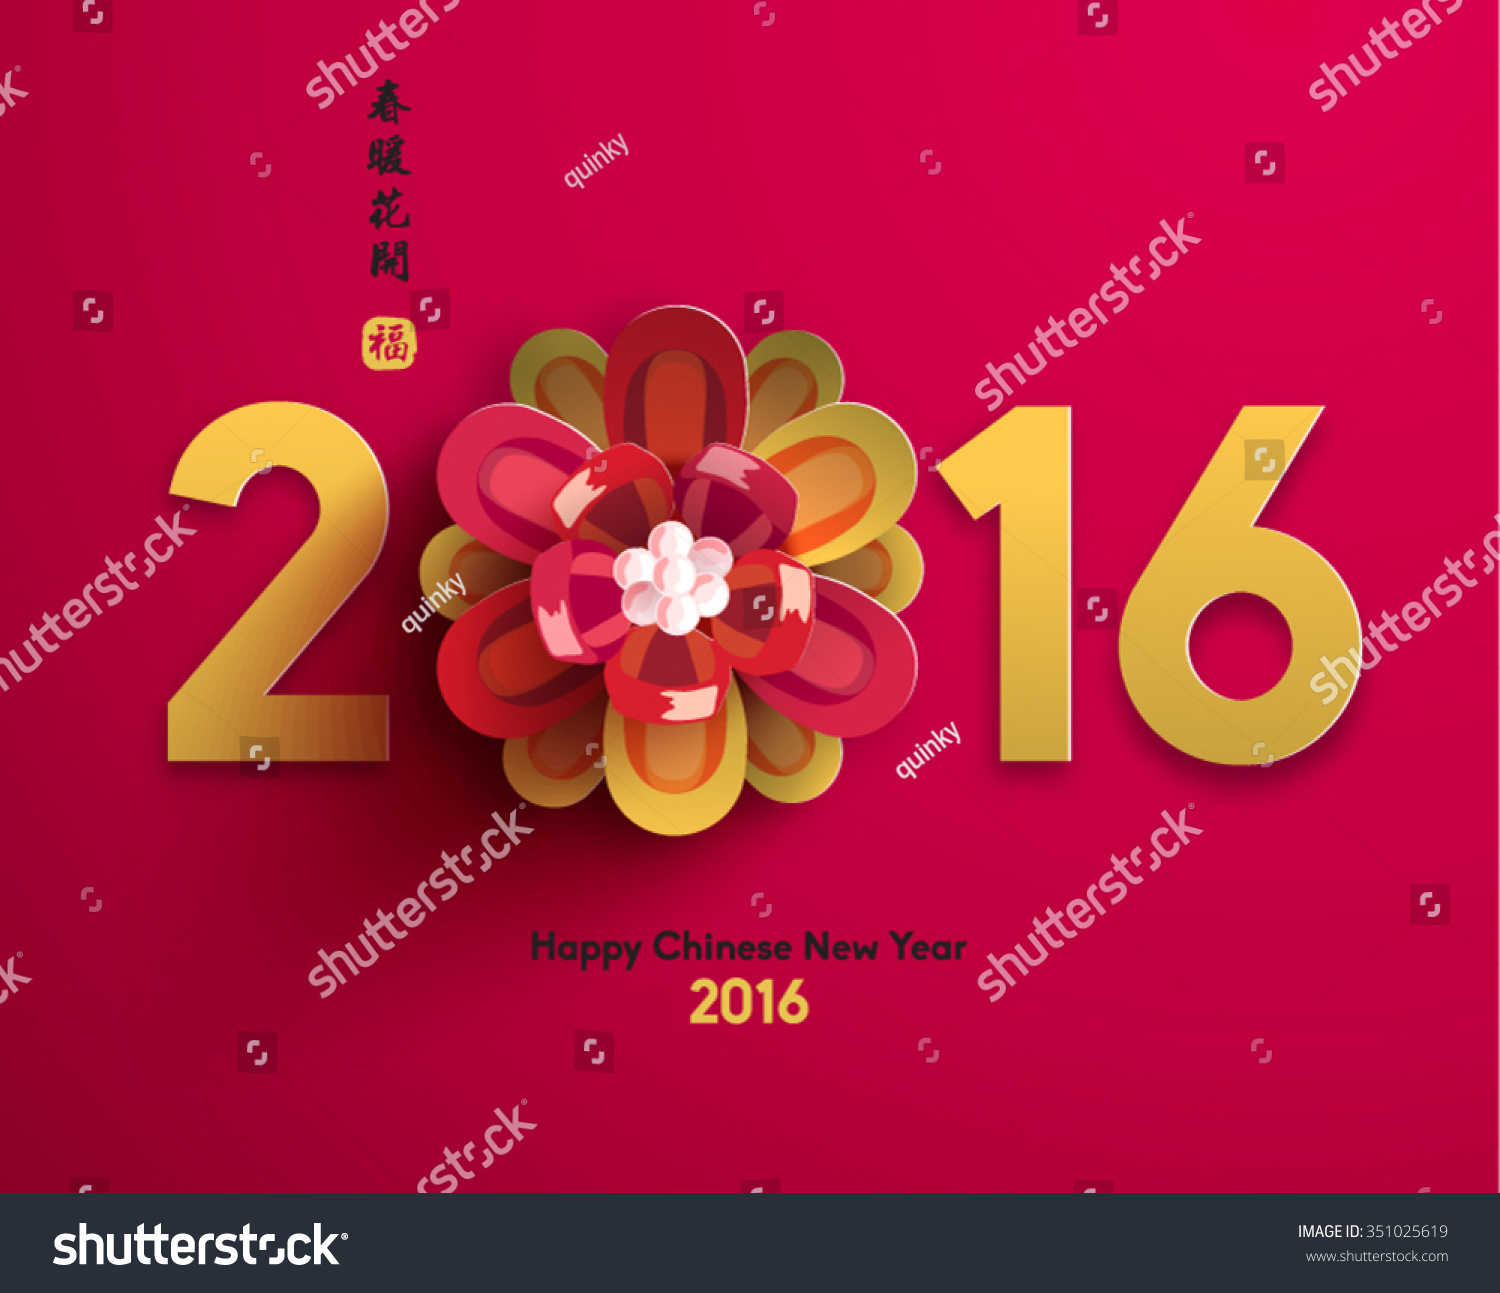 Flowers New Year 2016 Song Dj Mp3 2019 bhojpuri Mp3 song